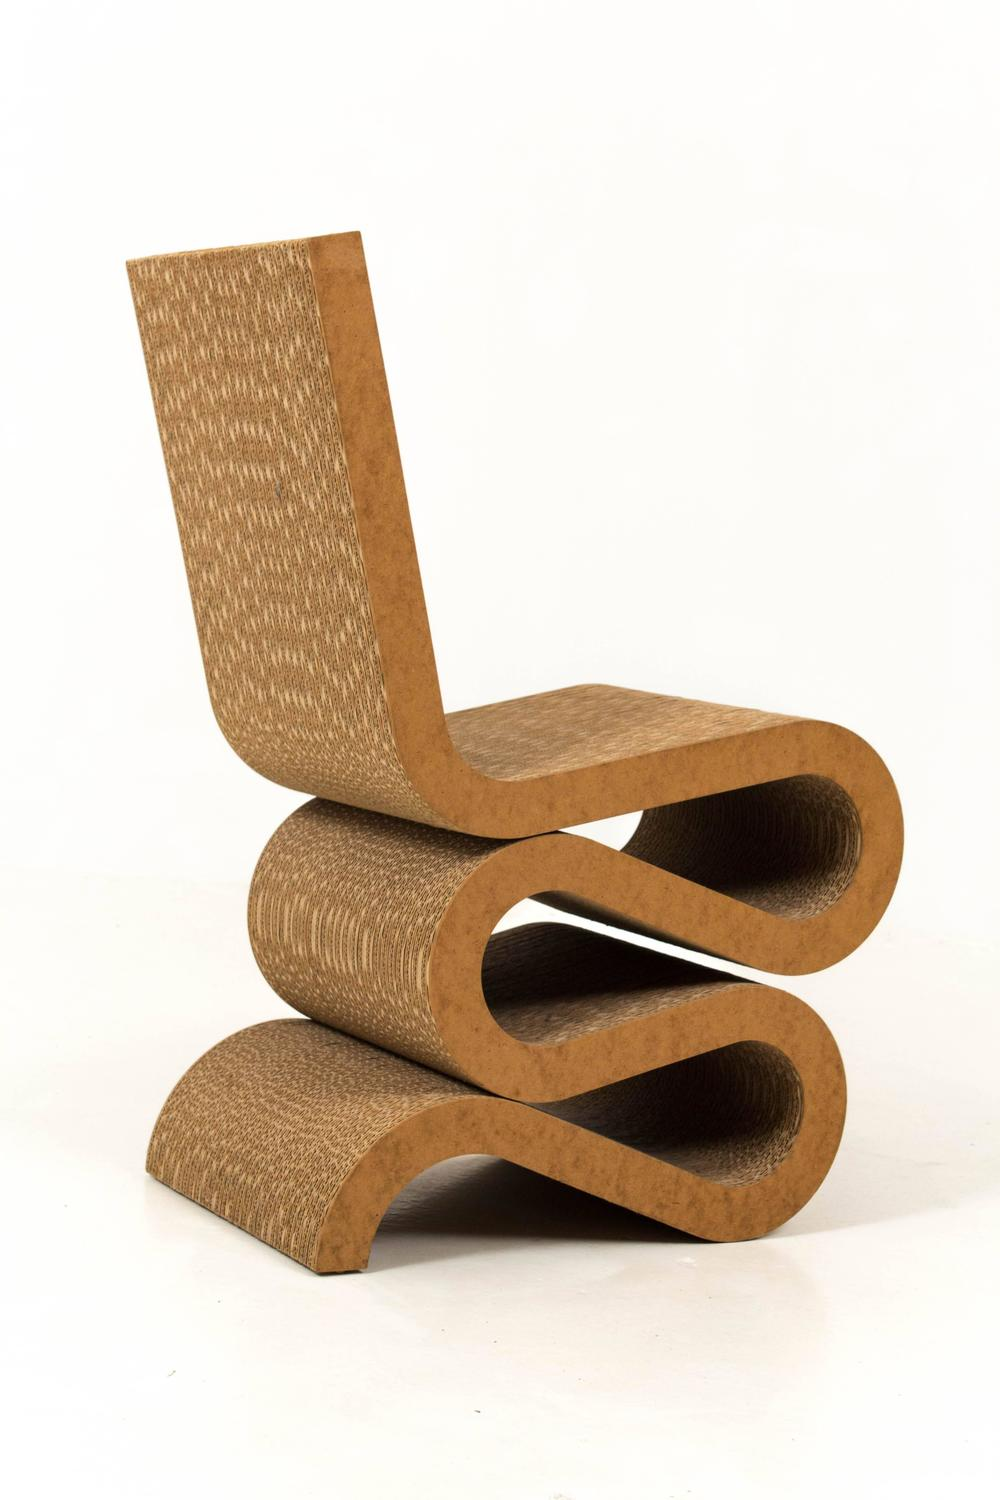 wiggle side chair by frank gehry 1972 for sale at 1stdibs. Black Bedroom Furniture Sets. Home Design Ideas